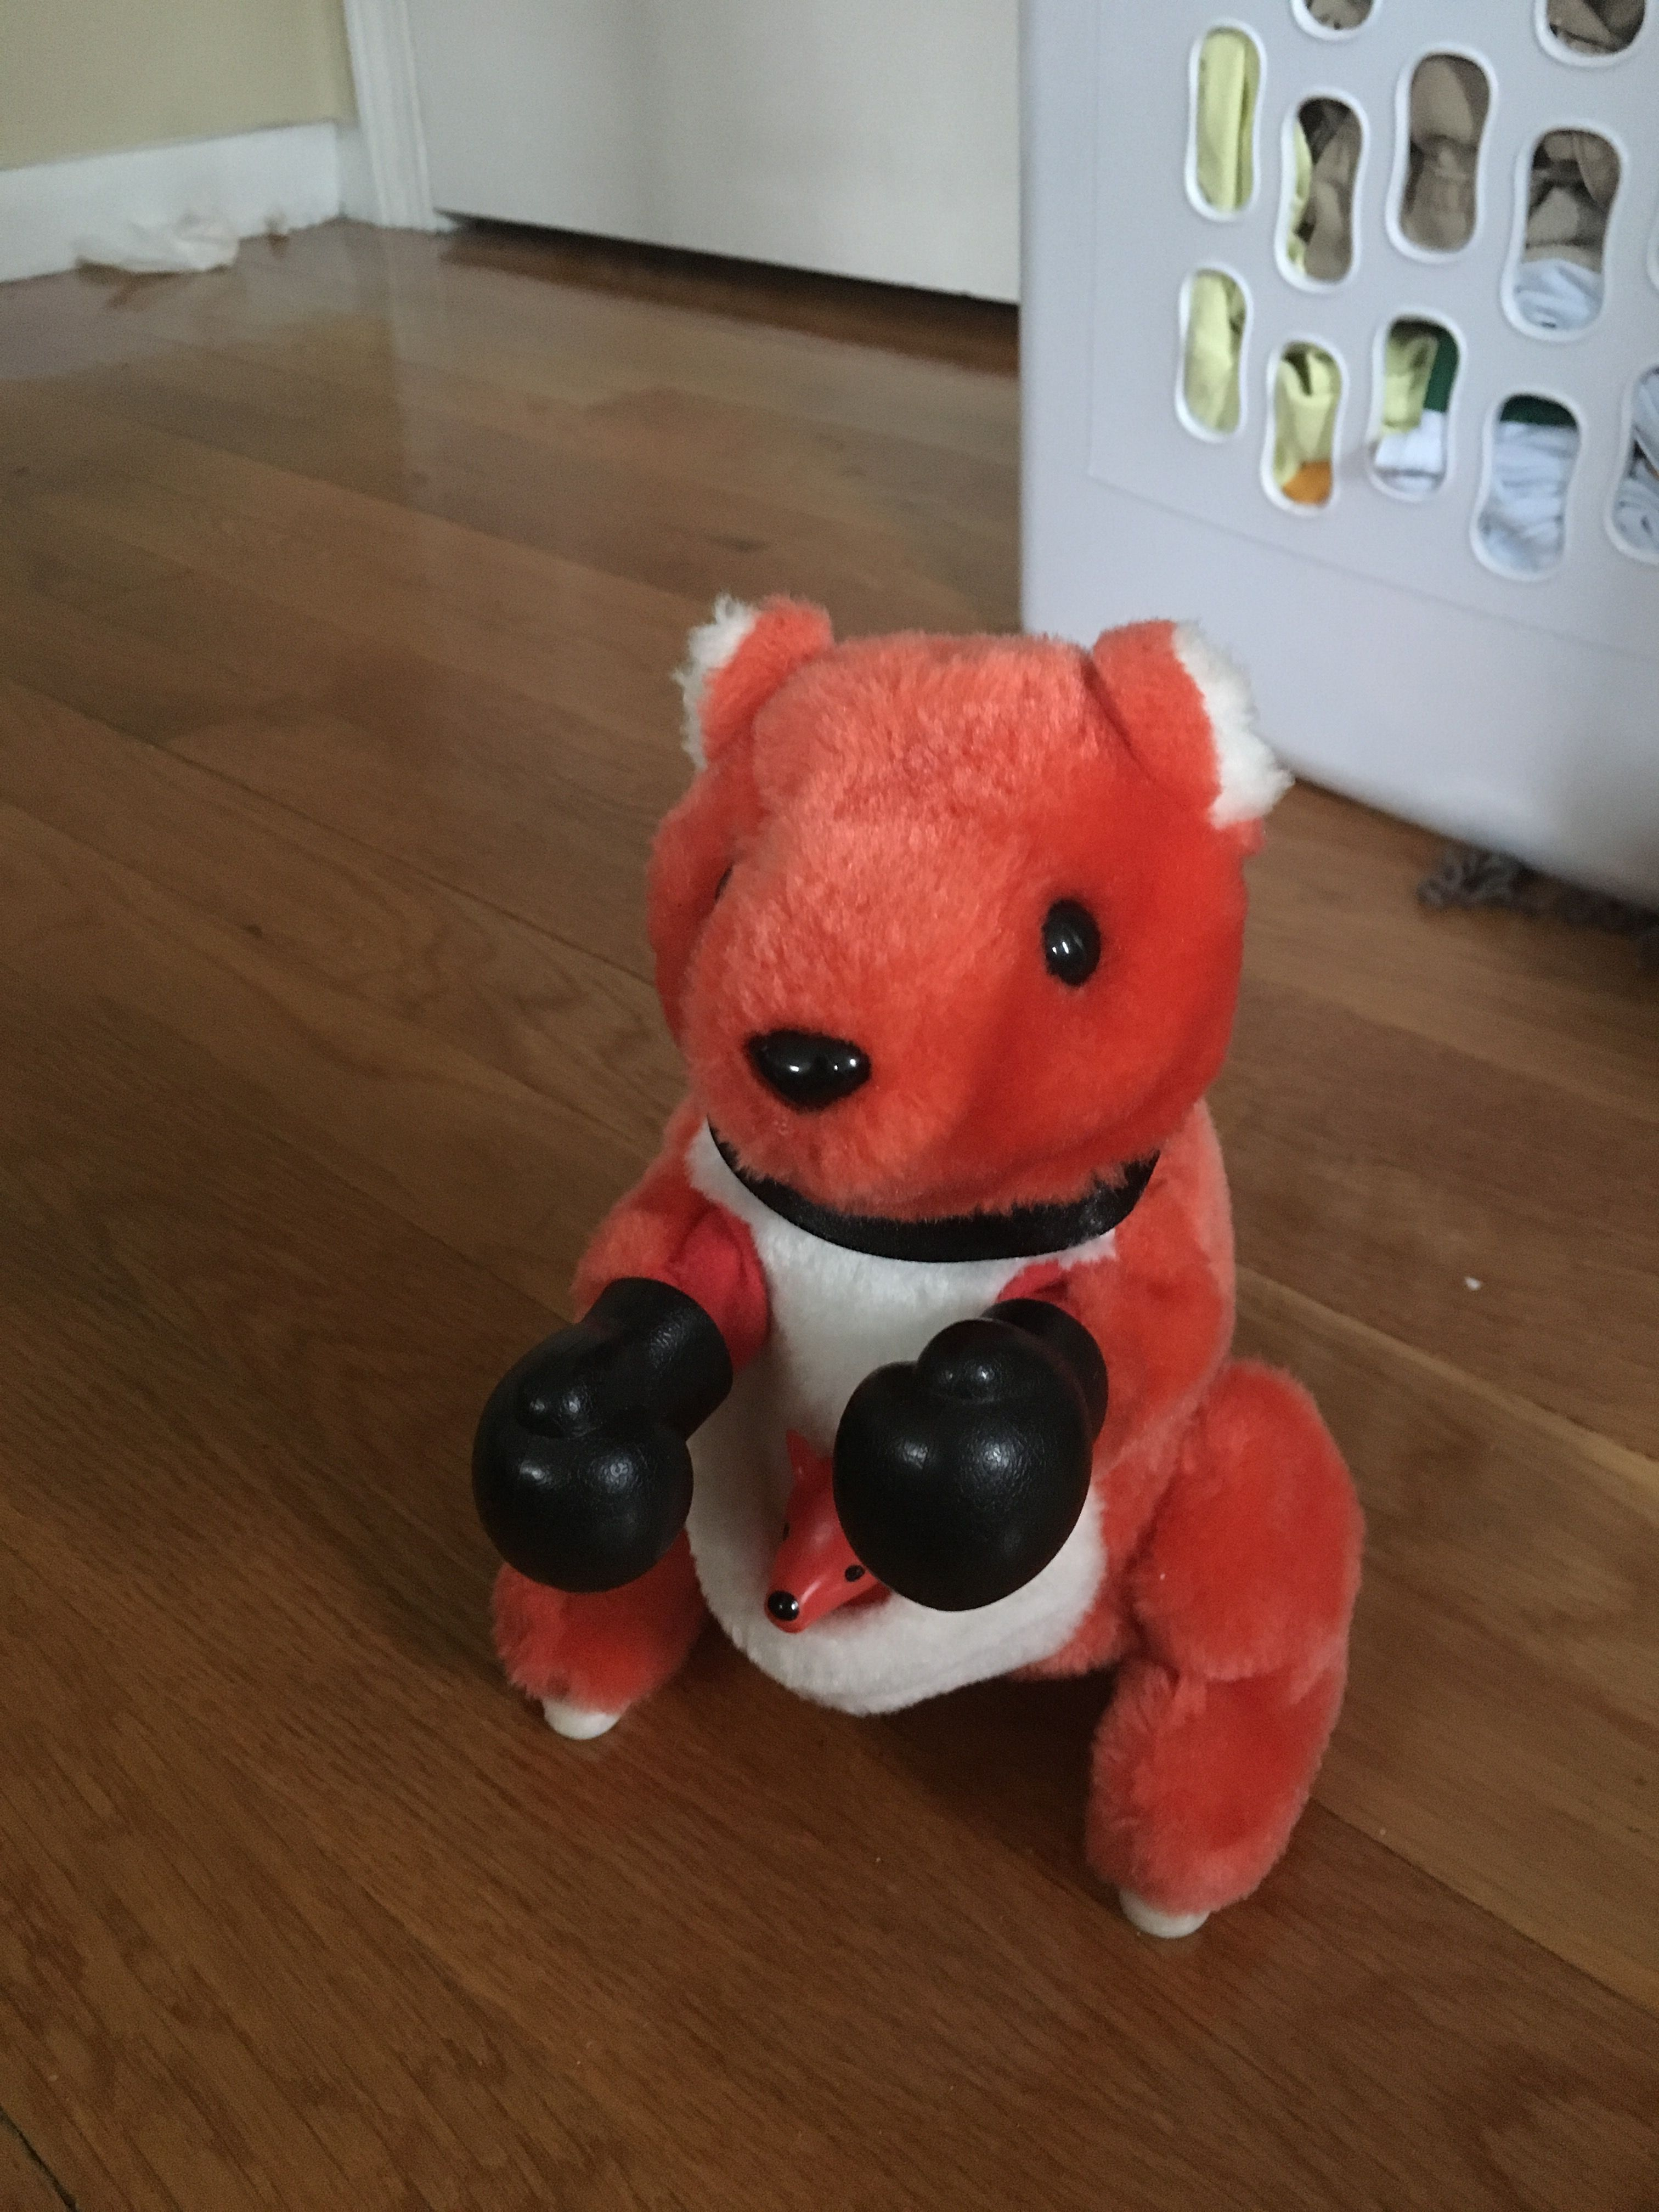 Boxing Kangaroo Also Does Not Work Baby Einstein Toys Einstein Toys Baby Einstein